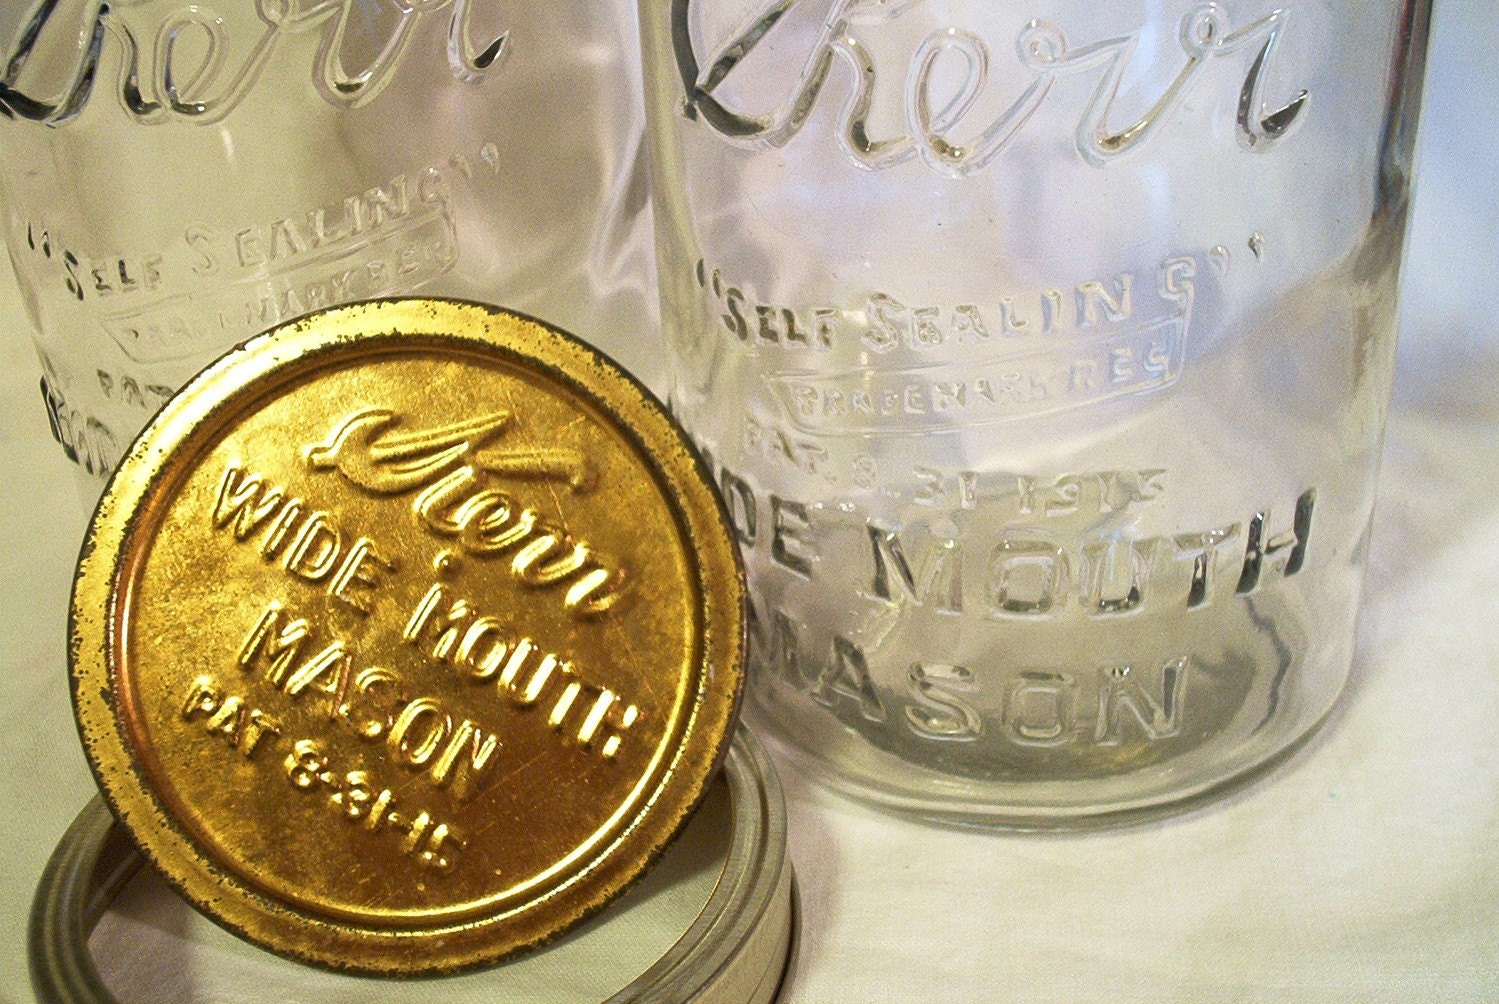 Two Antique Kerr Mason Fruit Canning Jars Wide Mouth Patented Metal Lids Embossed Patent Date